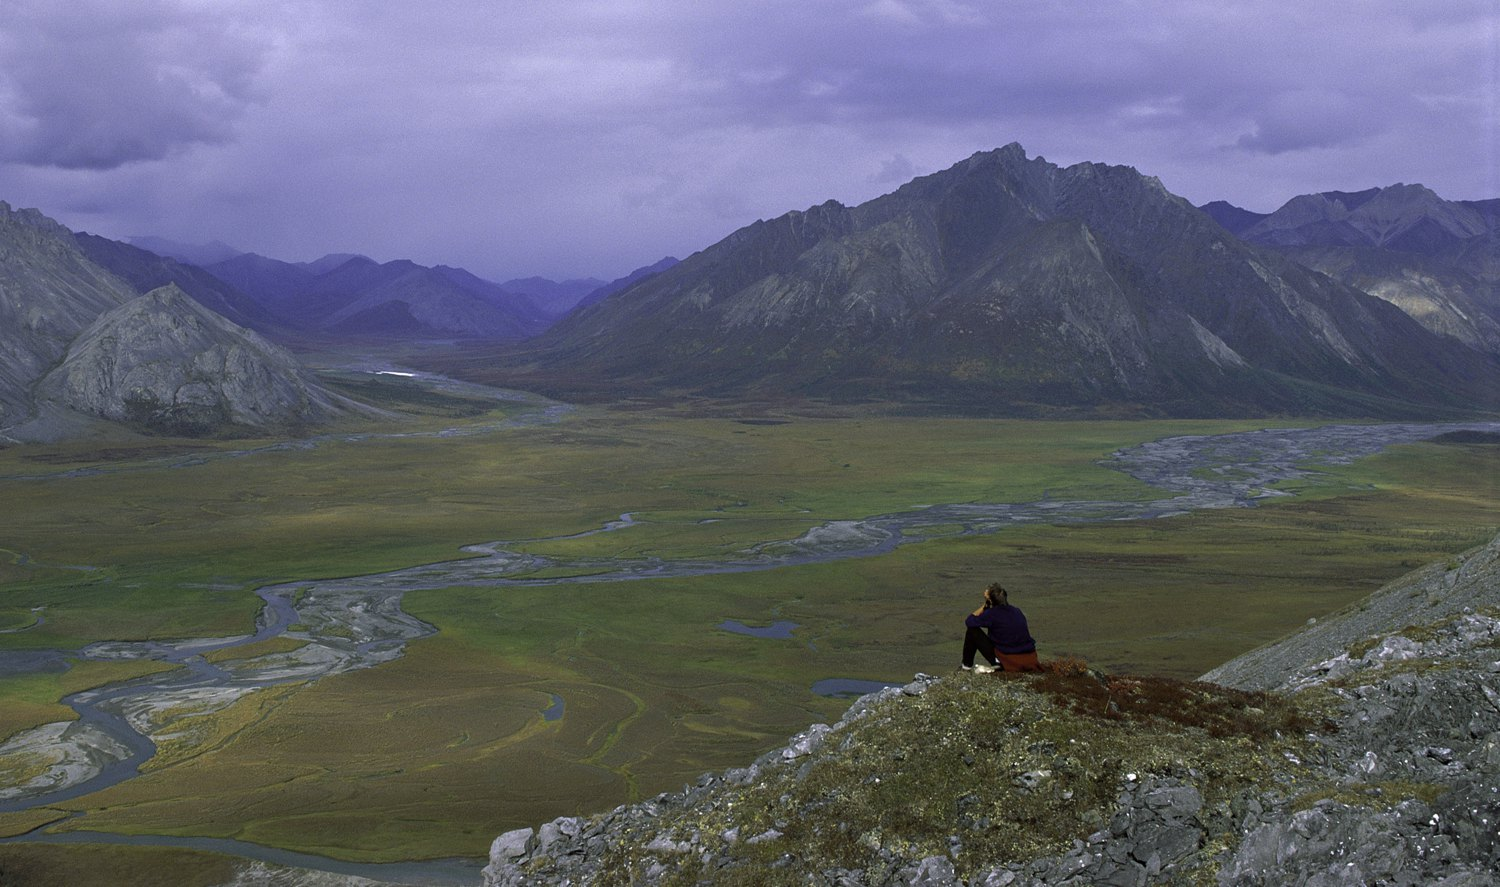 Should the Arctic National Wildlife Refuge be opened to oil drilling?